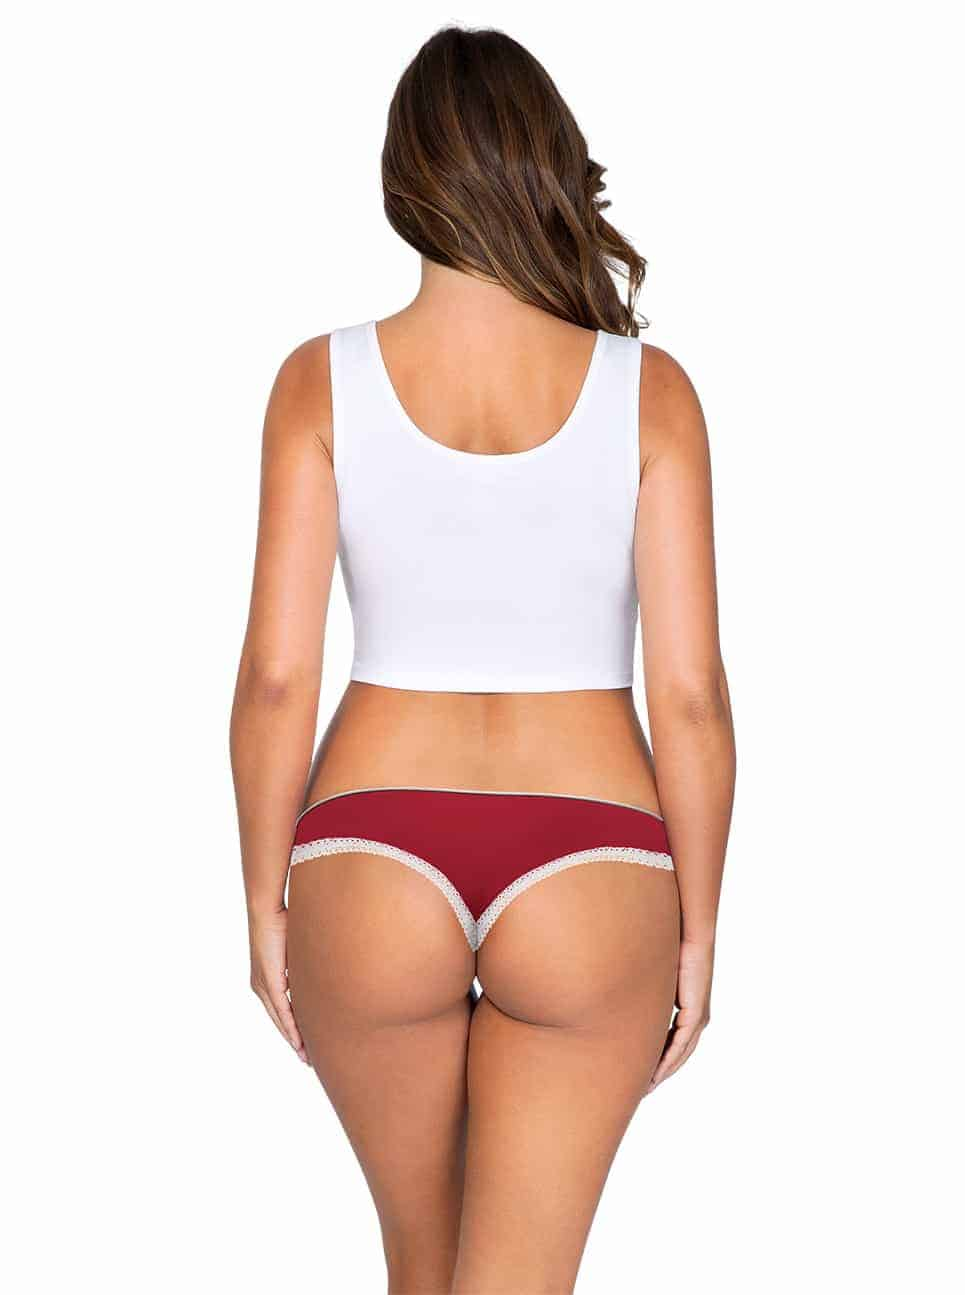 ParfaitPantyThong PP401 D TangoRedBack - Panty So Lovely Thong Tango Red PP401